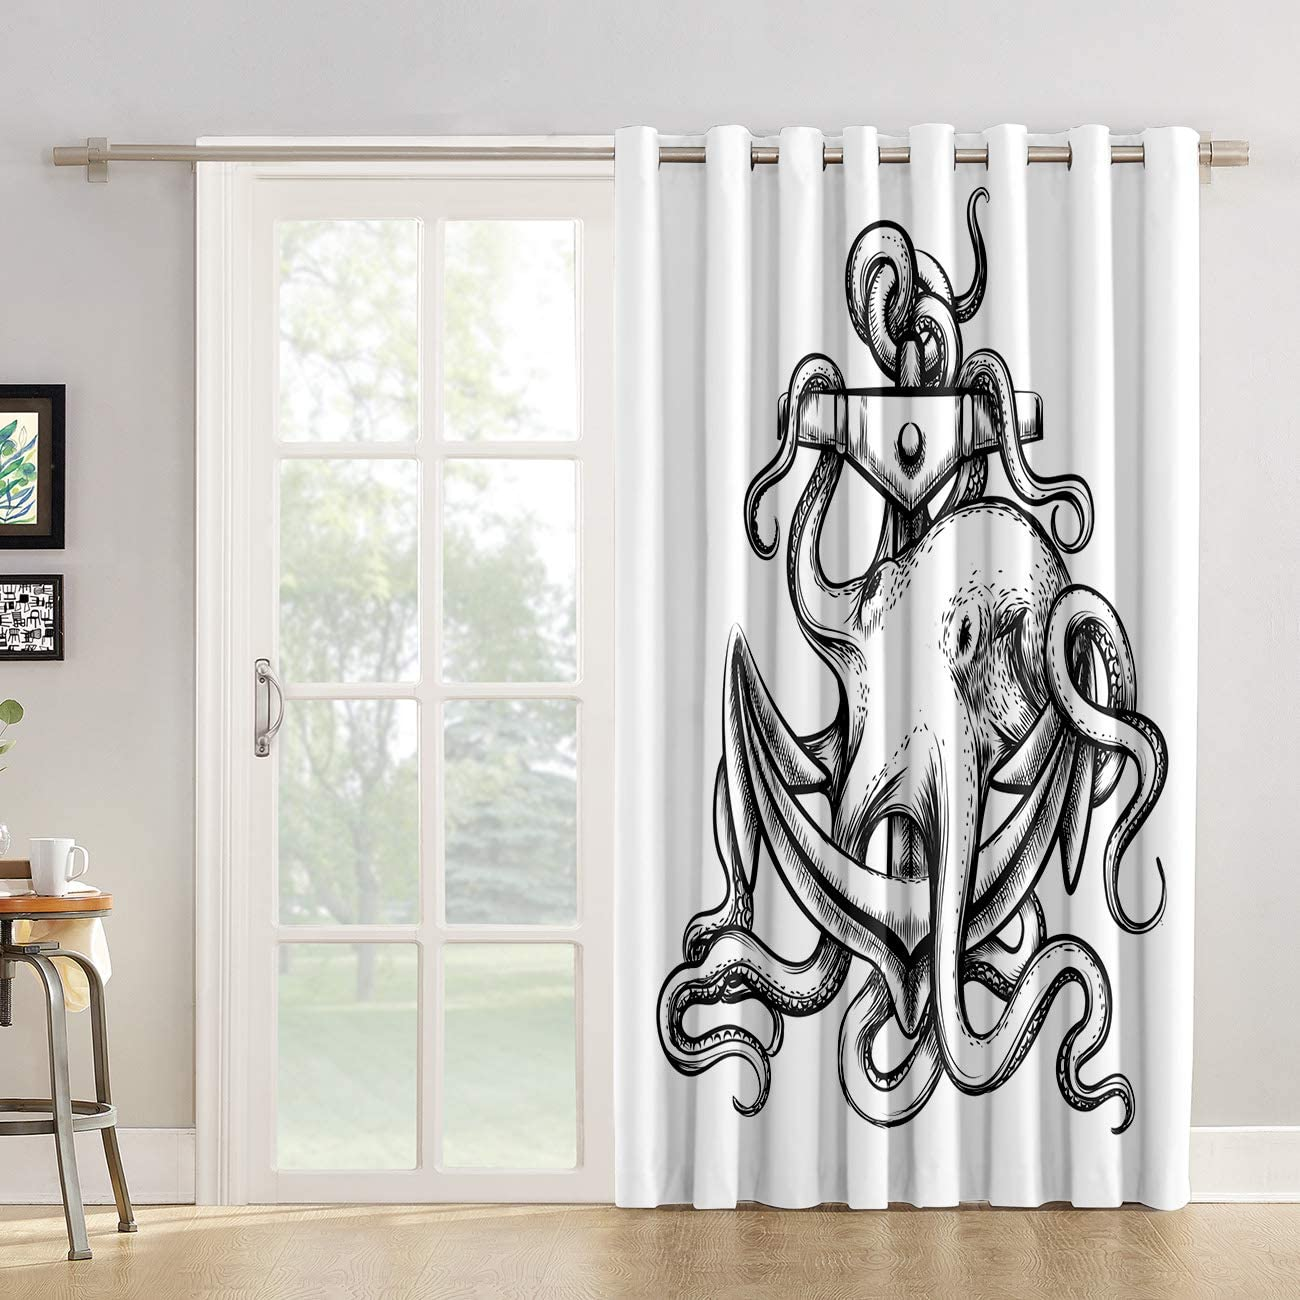 Red Vow Kitchen Tier Curtains 90 inch Length Black and White Octopus Tentacles Entangled with Nautical Anchor Patterned Chic Window Fabric Panel for Living Room Bedroom Sliding Patio Door